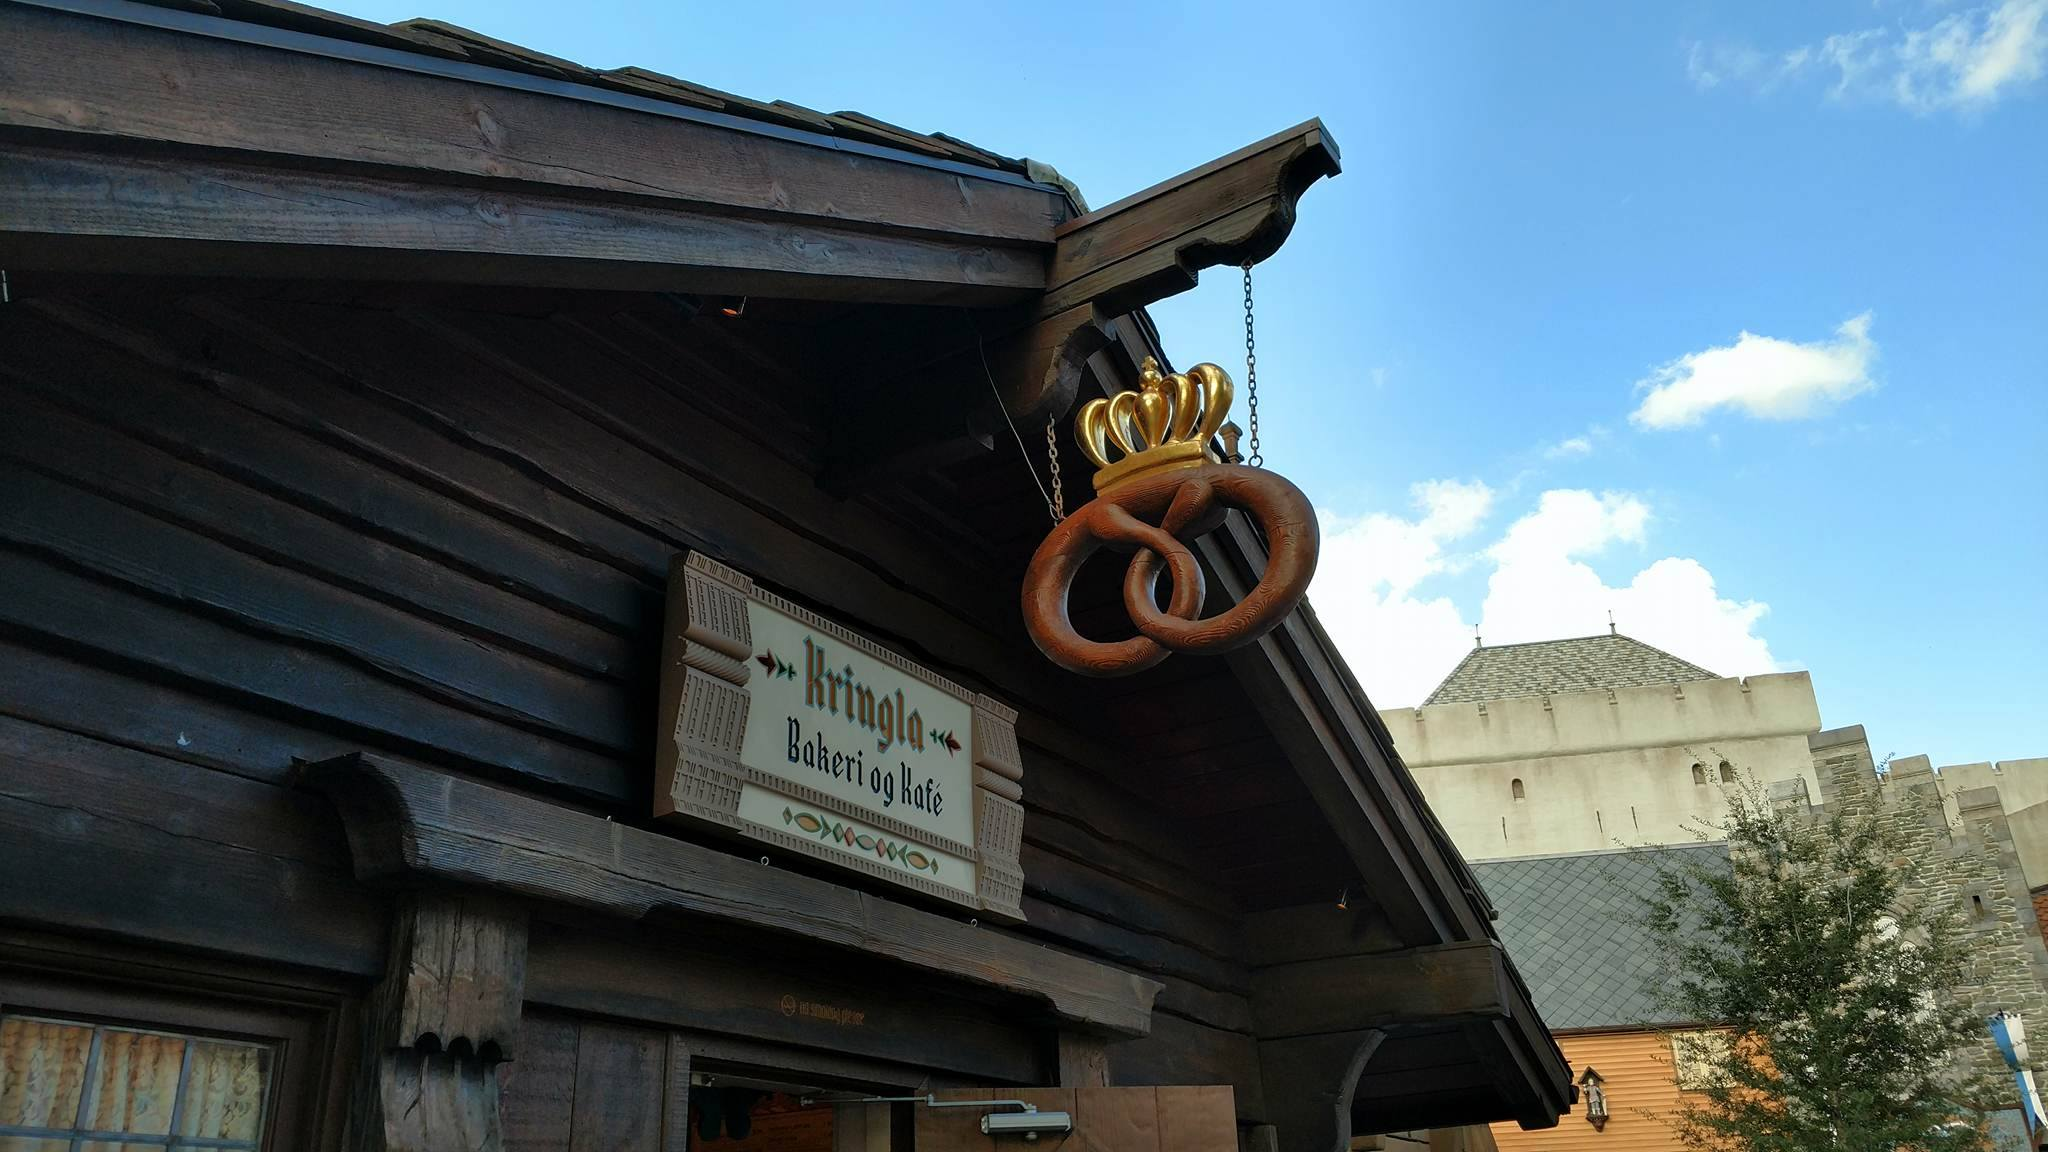 5 Amazing Sweet Treats You Can Get Year Round at Epcot's Kringla Bakeri